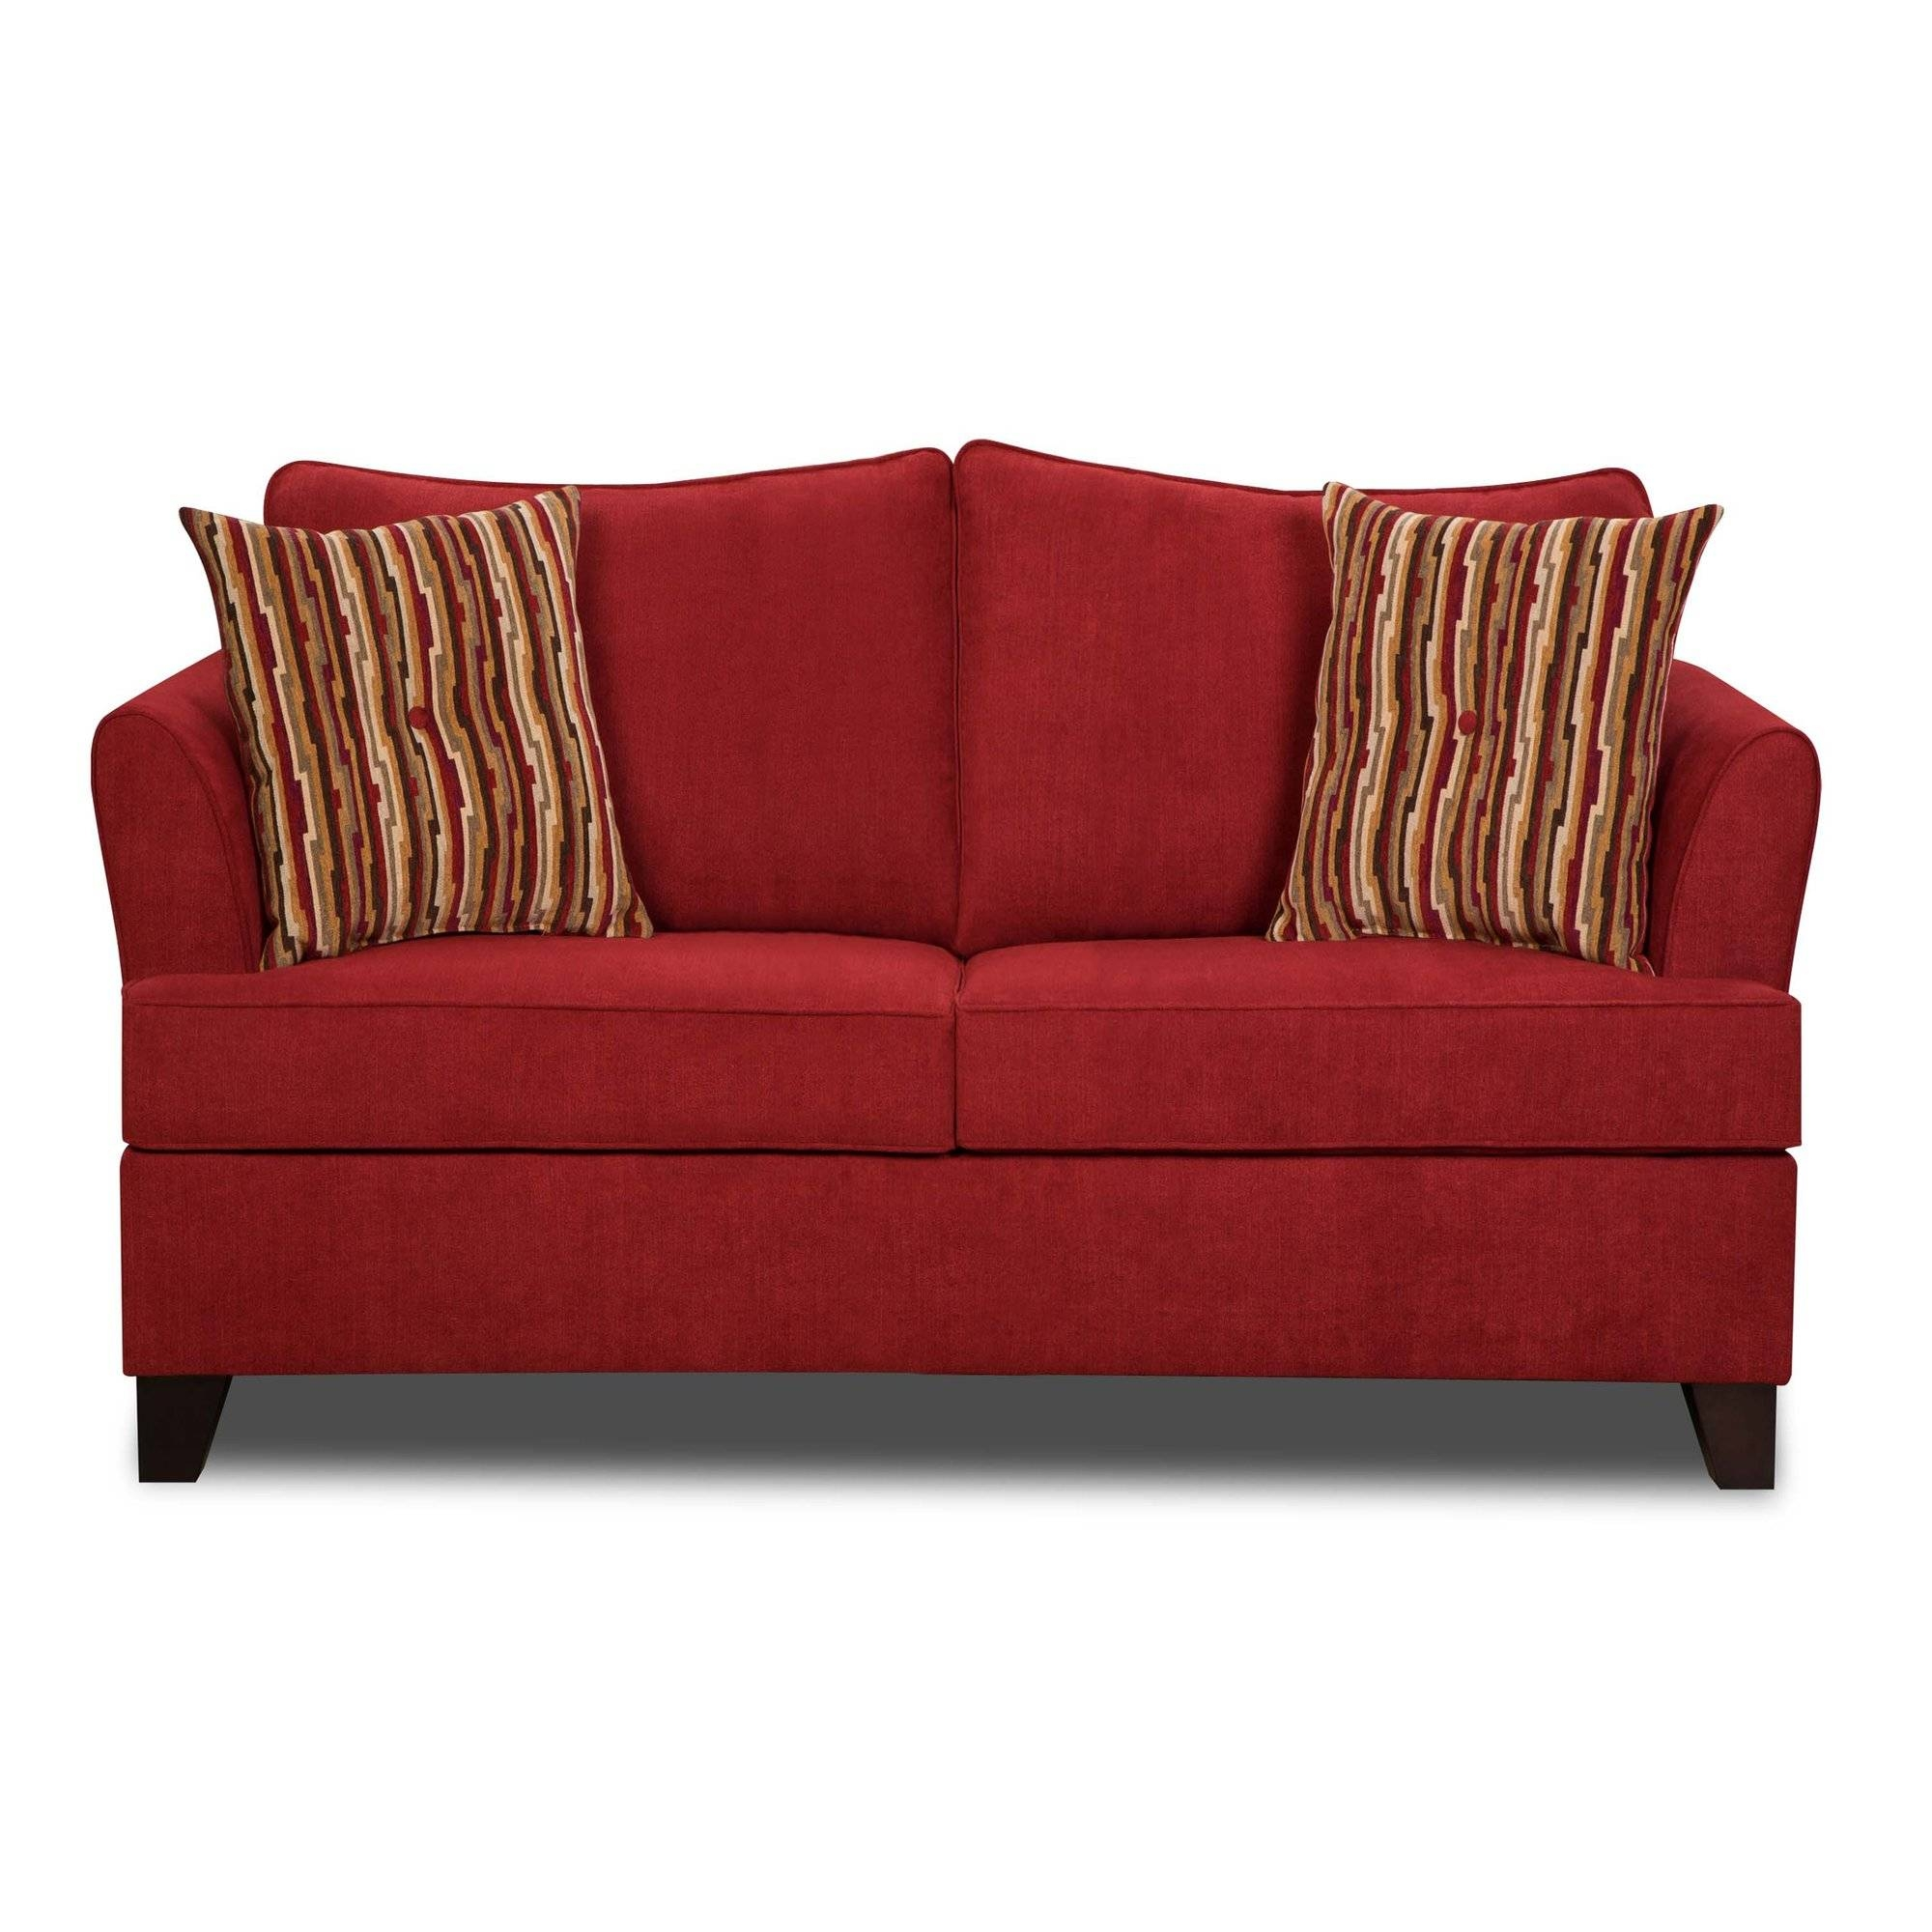 Furniture: Using Comfy Simmons Sleeper Sofa For Home Furniture pertaining to Red Sleeper Sofa (Image 8 of 30)